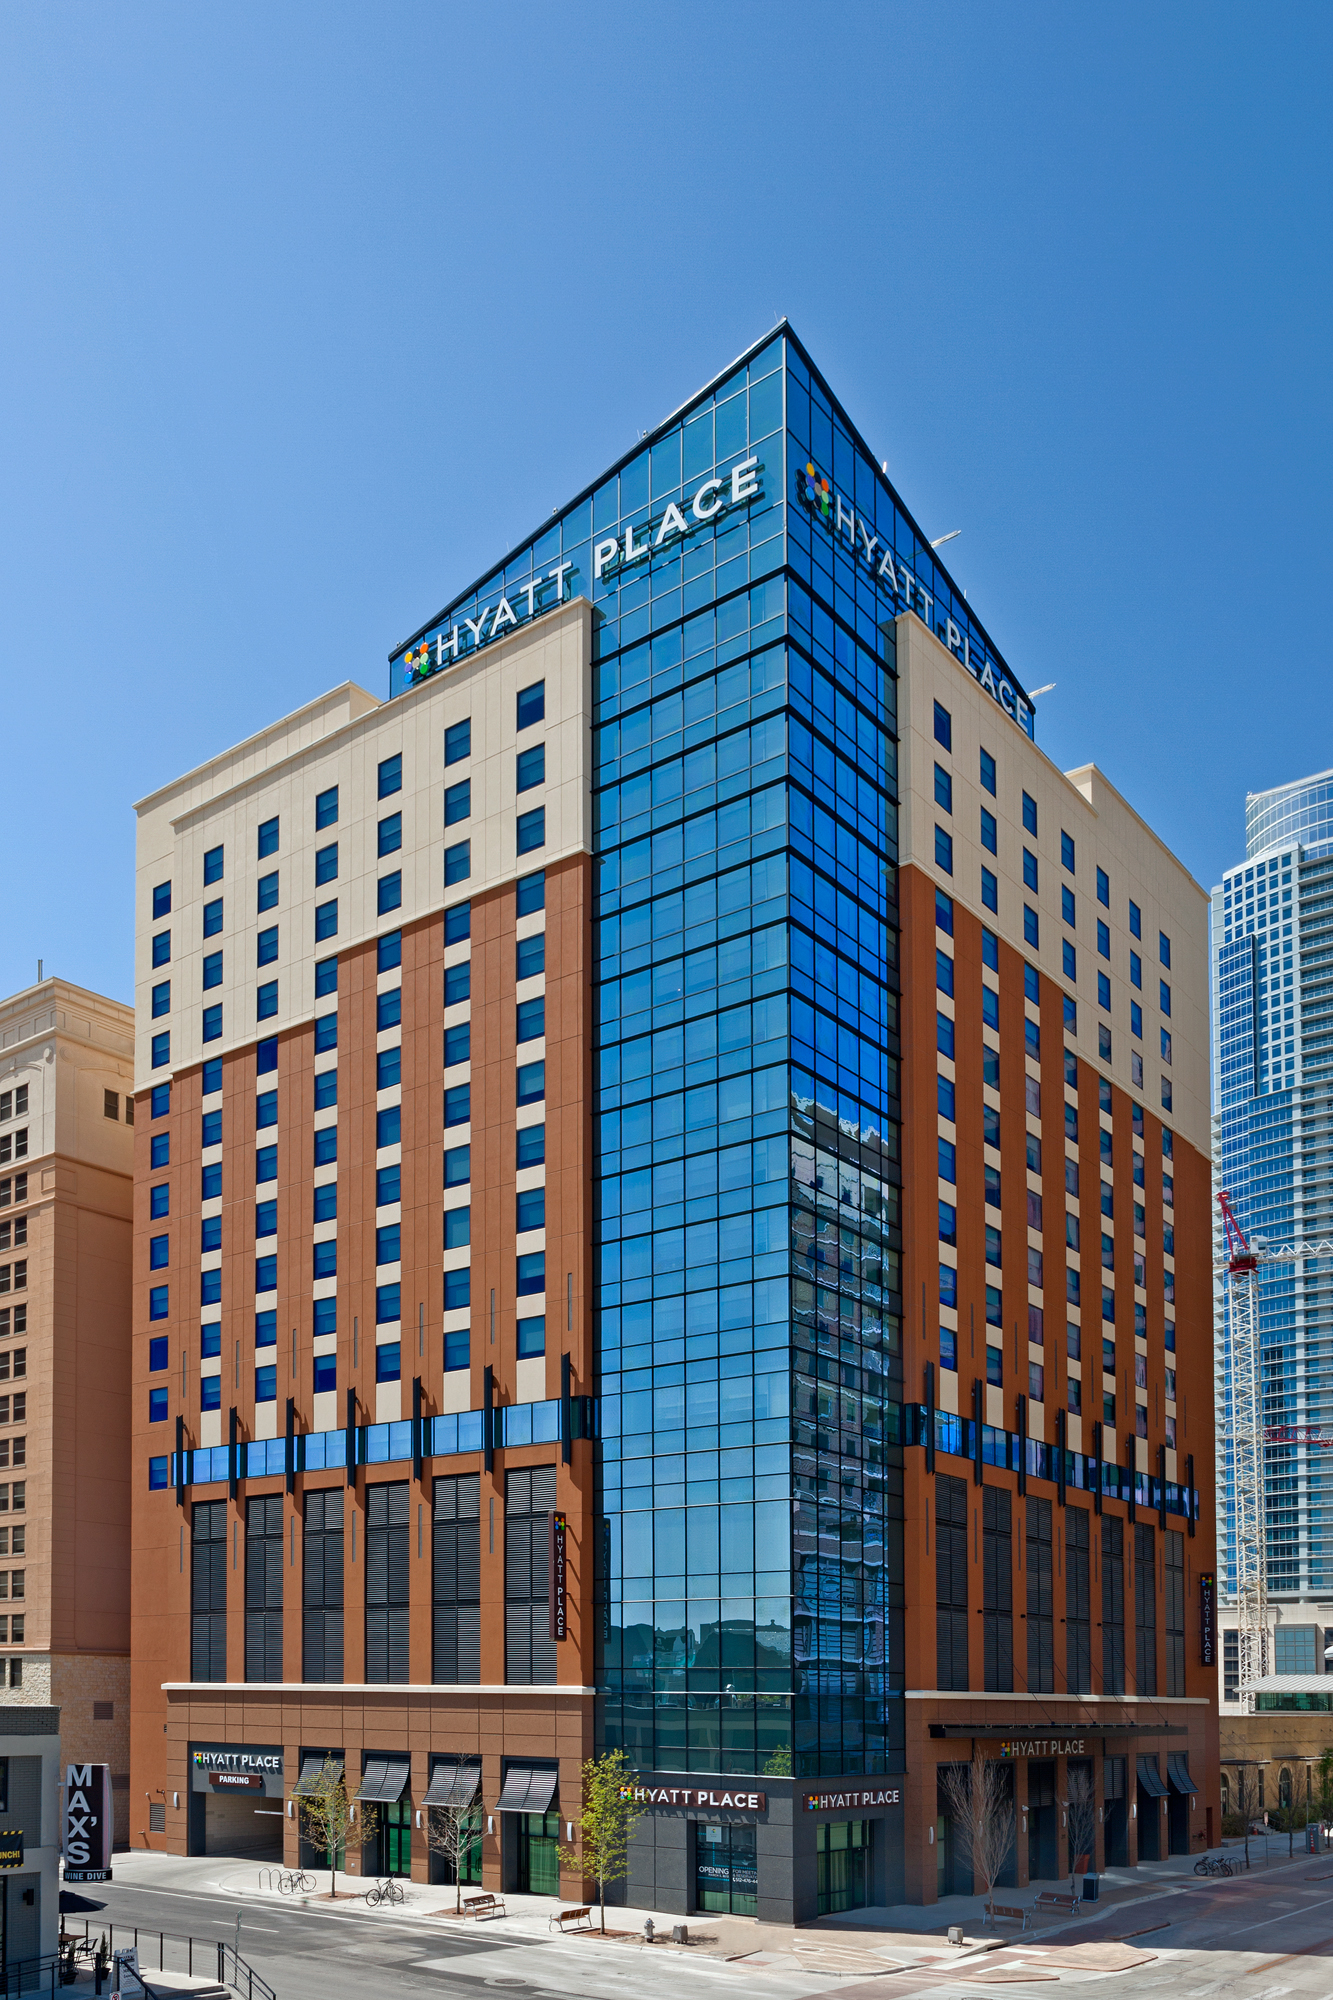 Hyatt place coupons discount